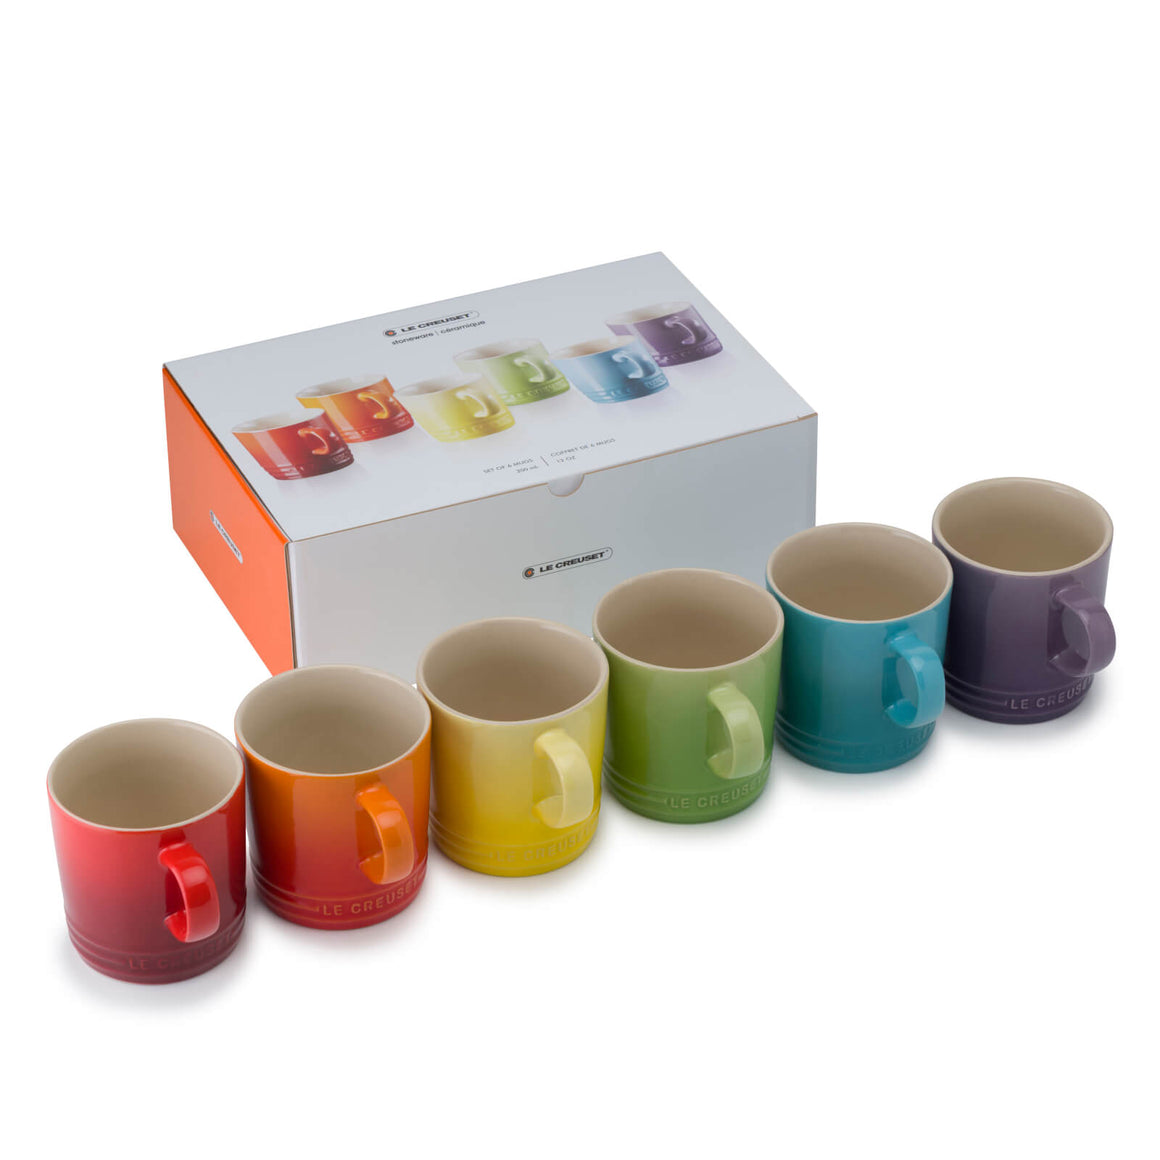 Le Creuset Rainbow 350ml Mug Set